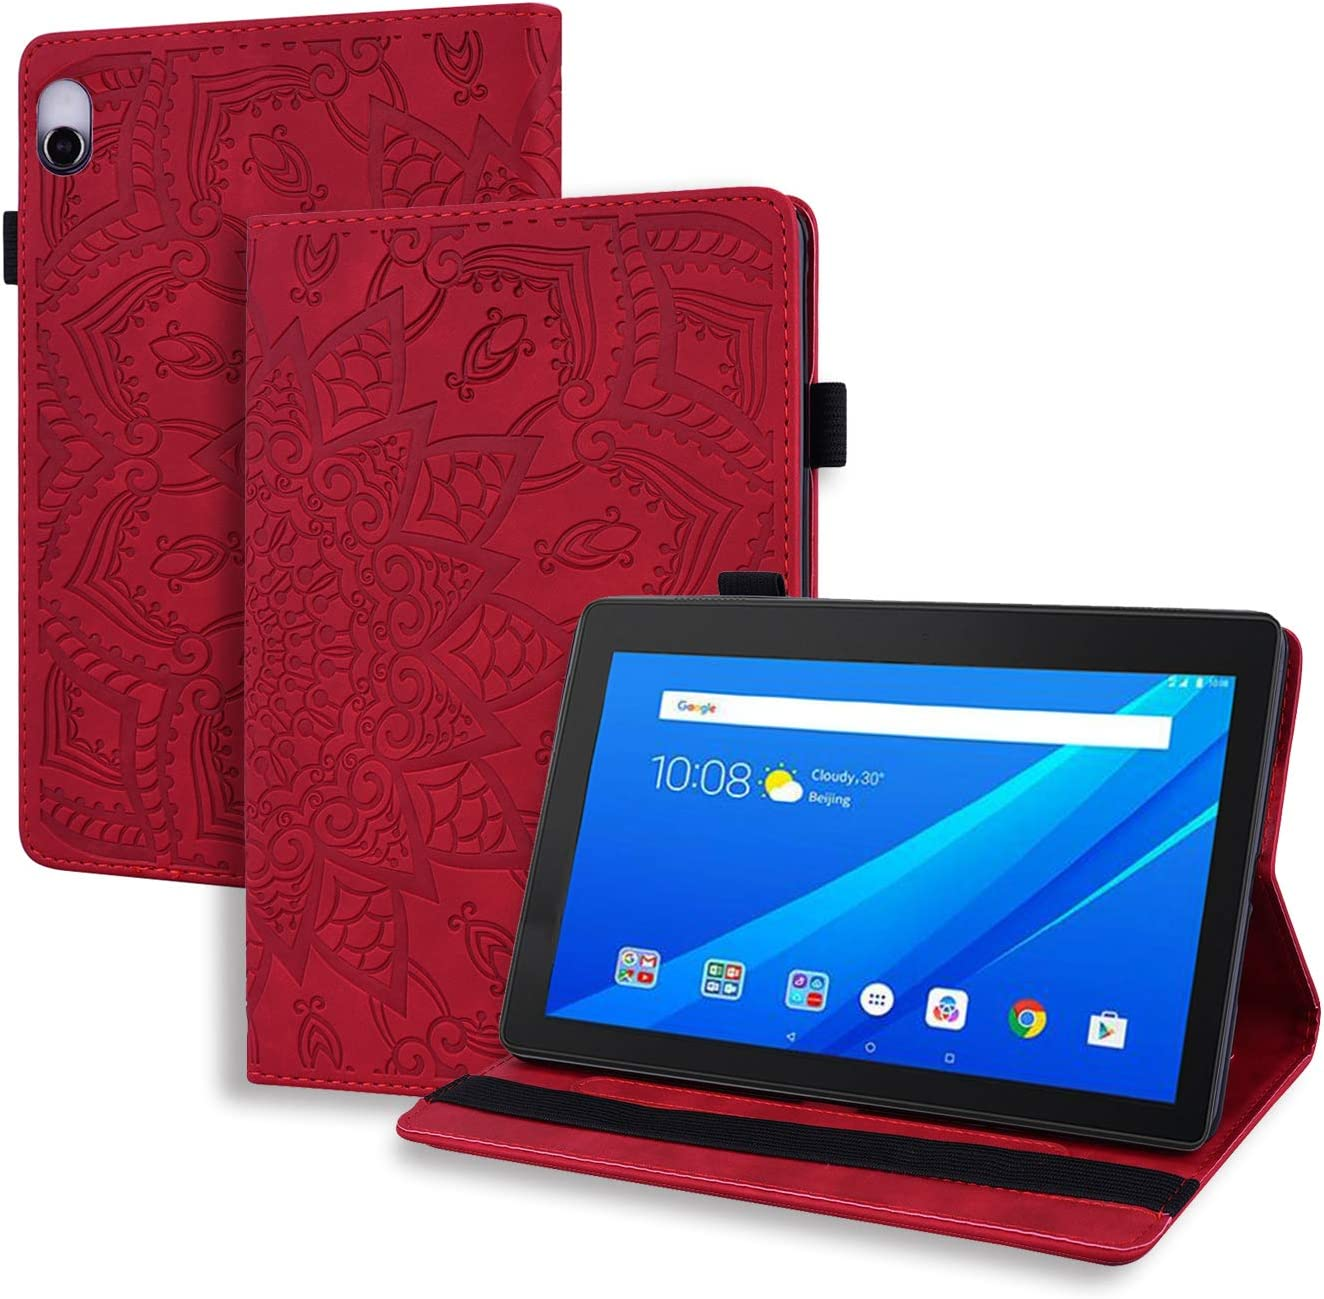 USTY Case for Lenovo Tab M10 10.1 - Slim Folio Stand Flower Premium PU Leather Cover with Strap/Card Holders for Lenovo Tab M10 10.1 Inch Android Tablet (TB-X605F / TB-X505F), Red